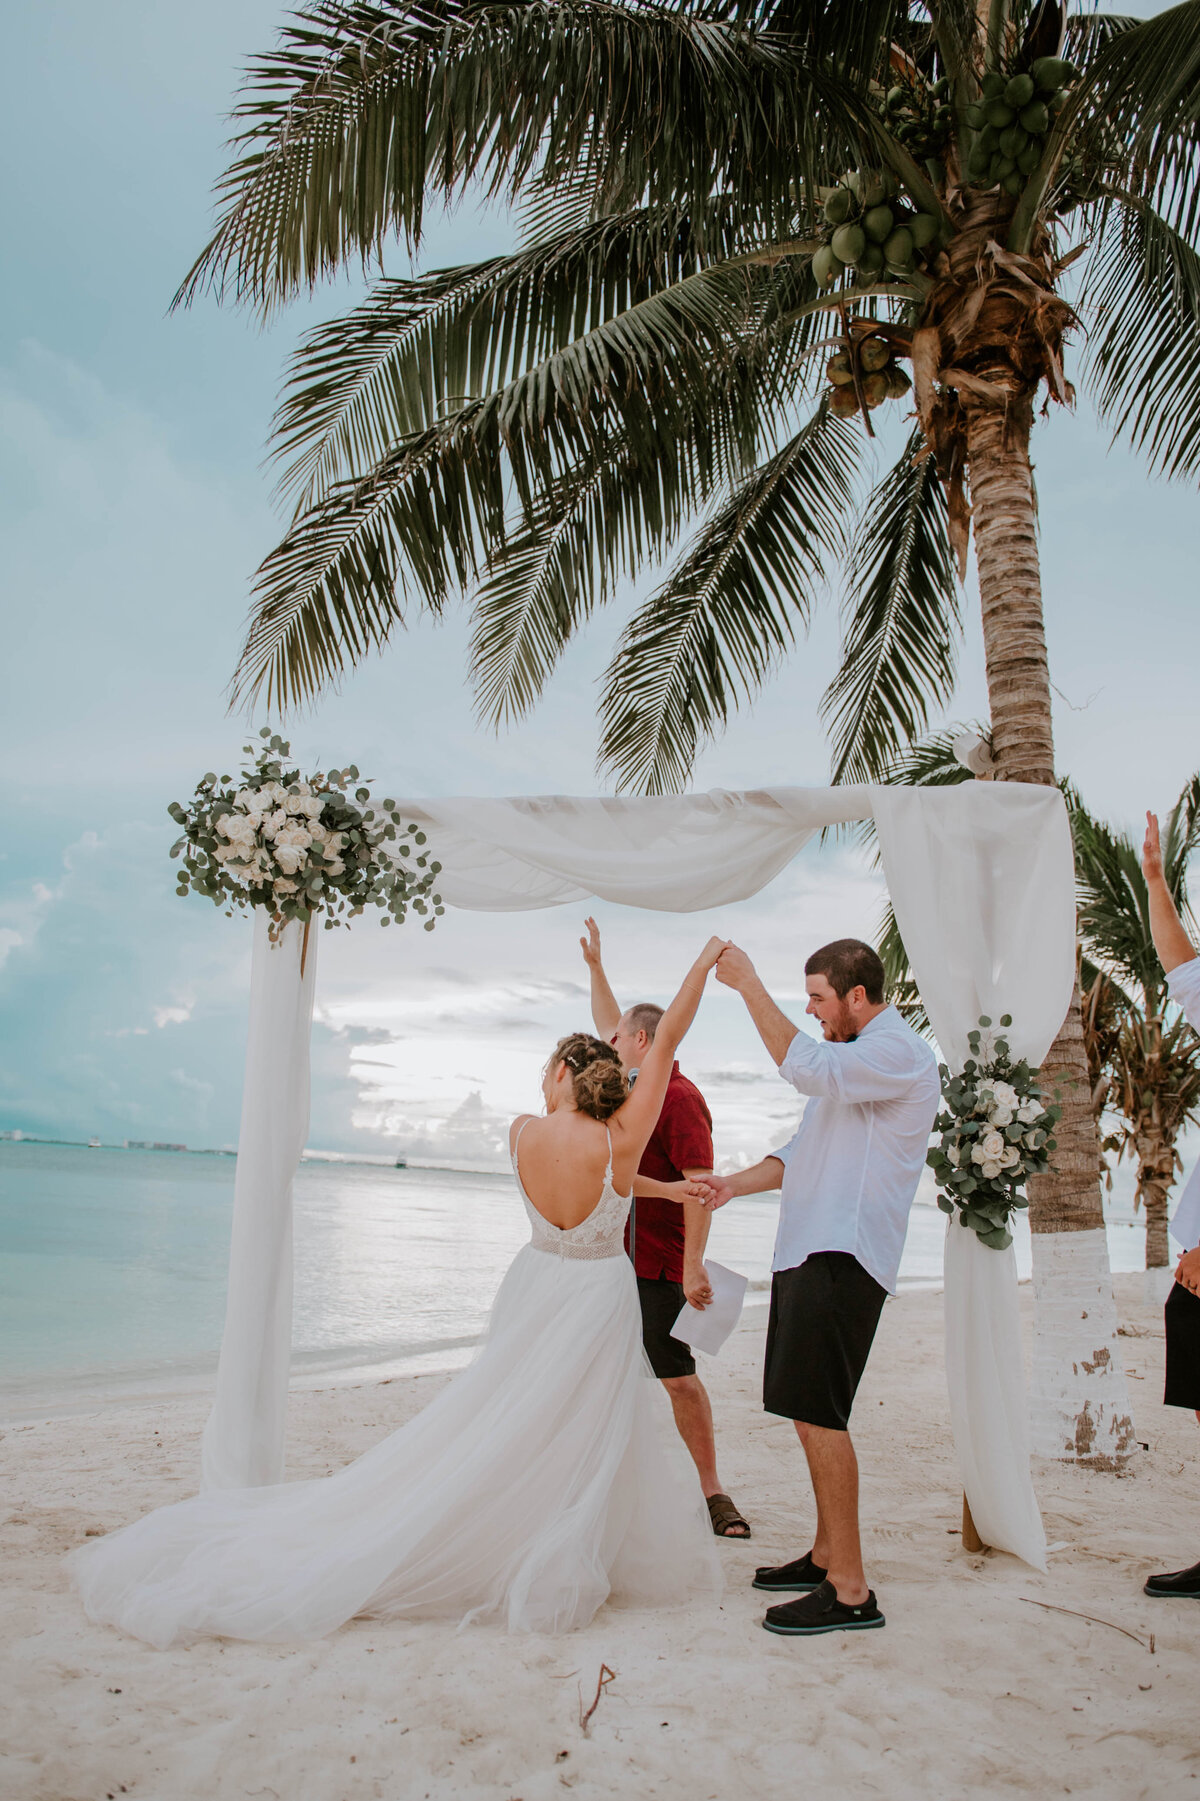 isla-mujeres-wedding-photographer-guthrie-zama-mexico-tulum-cancun-beach-destination-1038